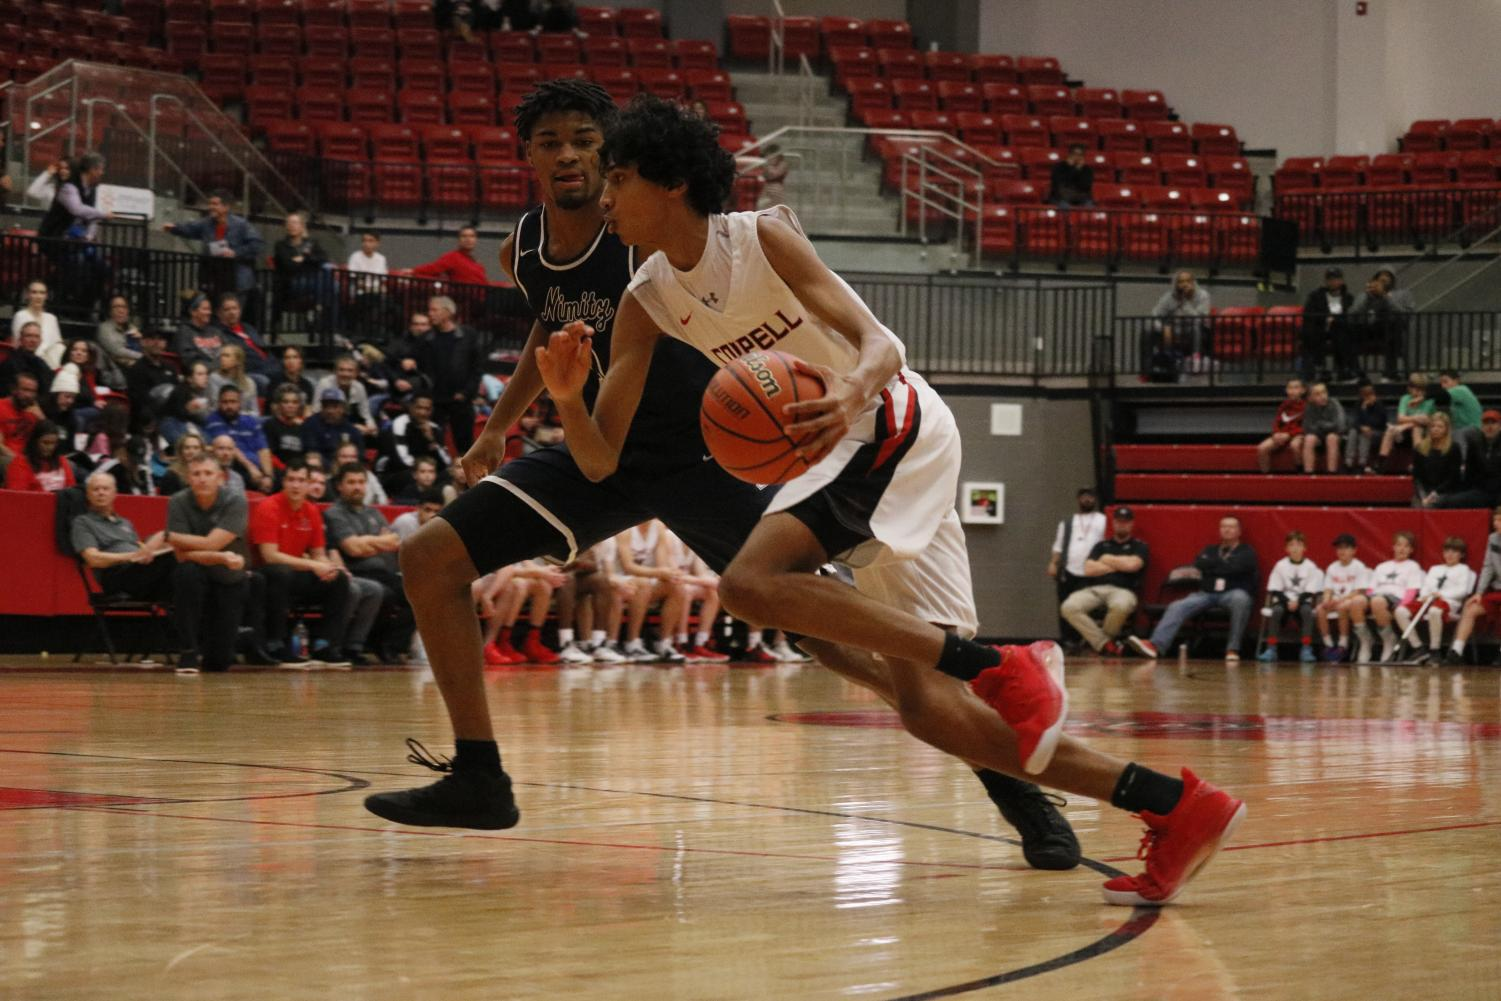 Coppell sophomore guard Ryan Agarwal shields the ball and attempts to make a play during the Cowboy's game against Irving Nimitz on Friday in the CHS Arena. The Vikings fell short to the Cowboys, 61-35, in their District 6-6A game. Photo by Sydney Rowe.